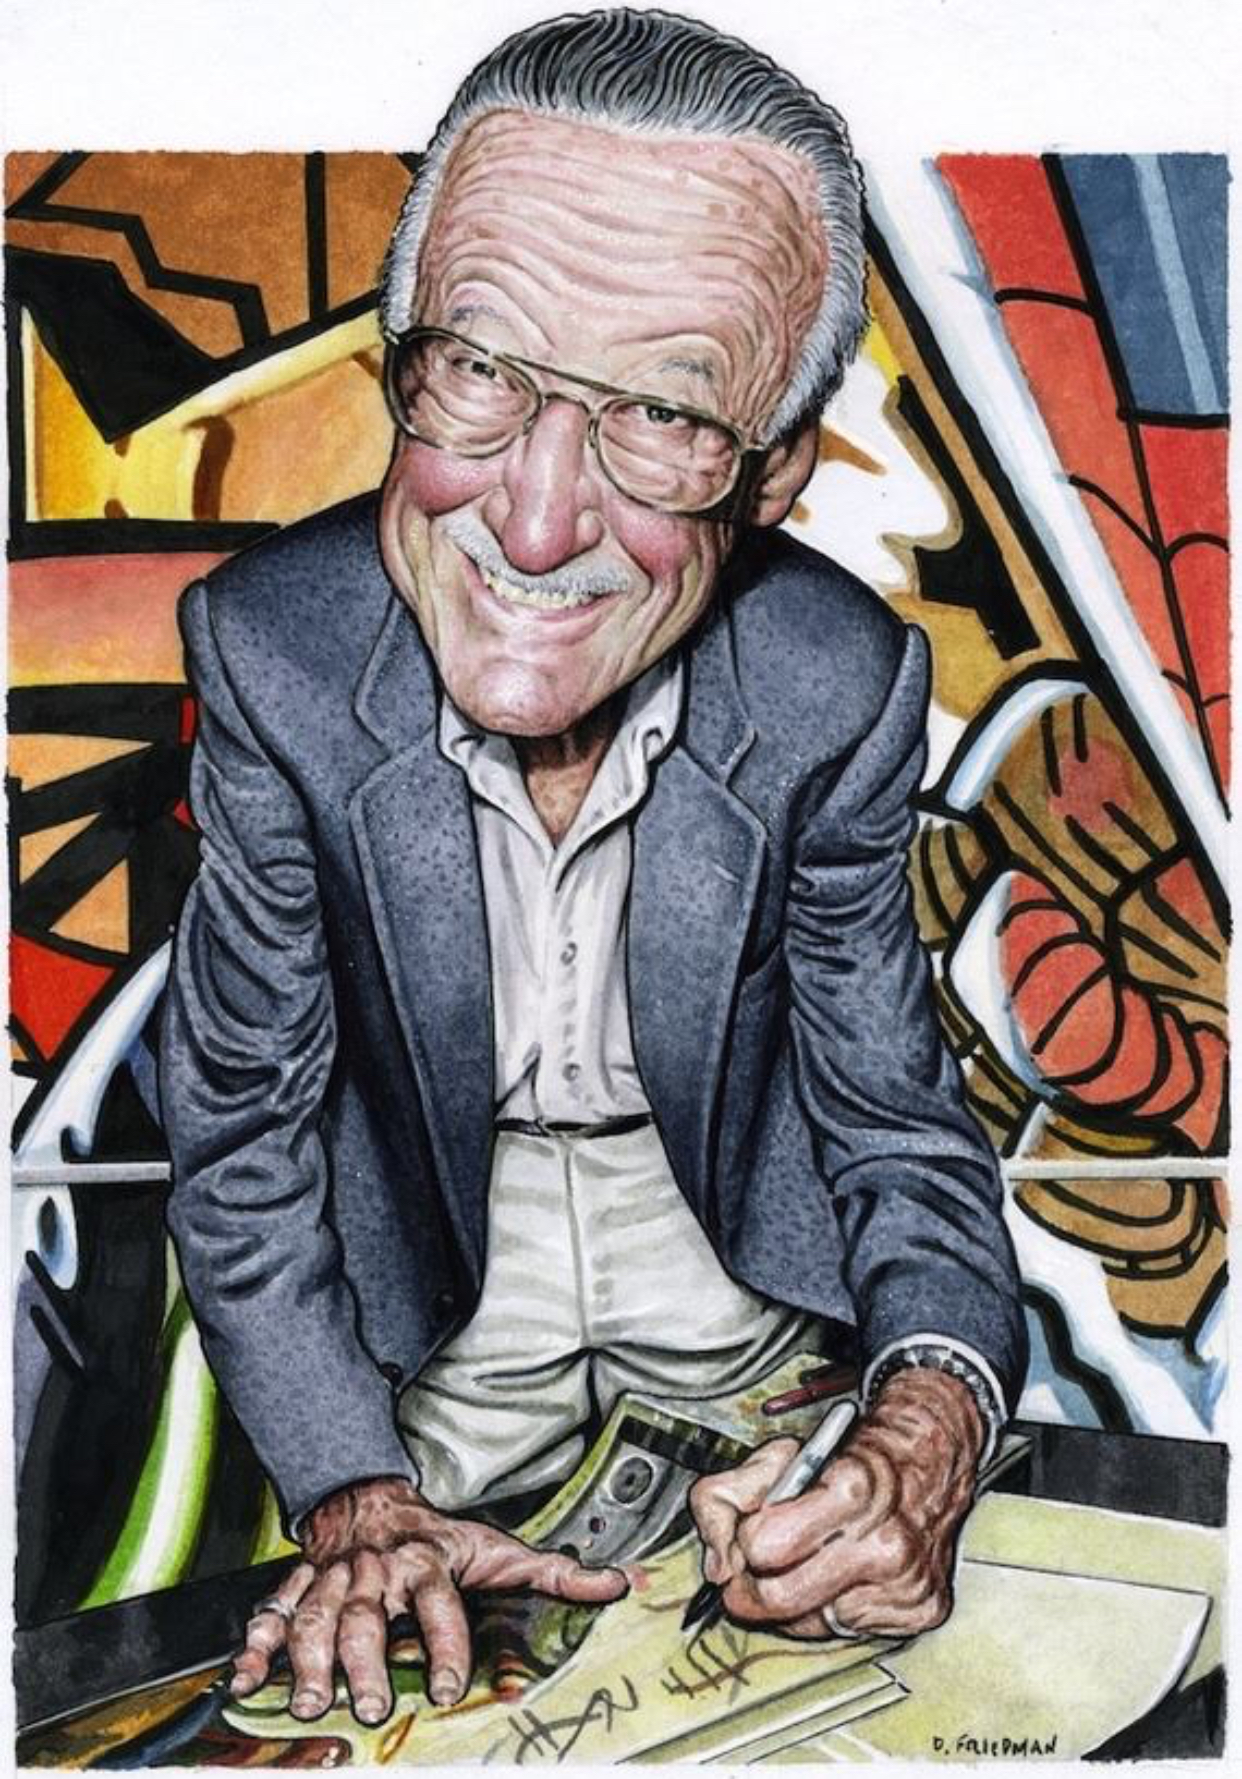 Caption: Stan Lee, Credit: Drew Friedman